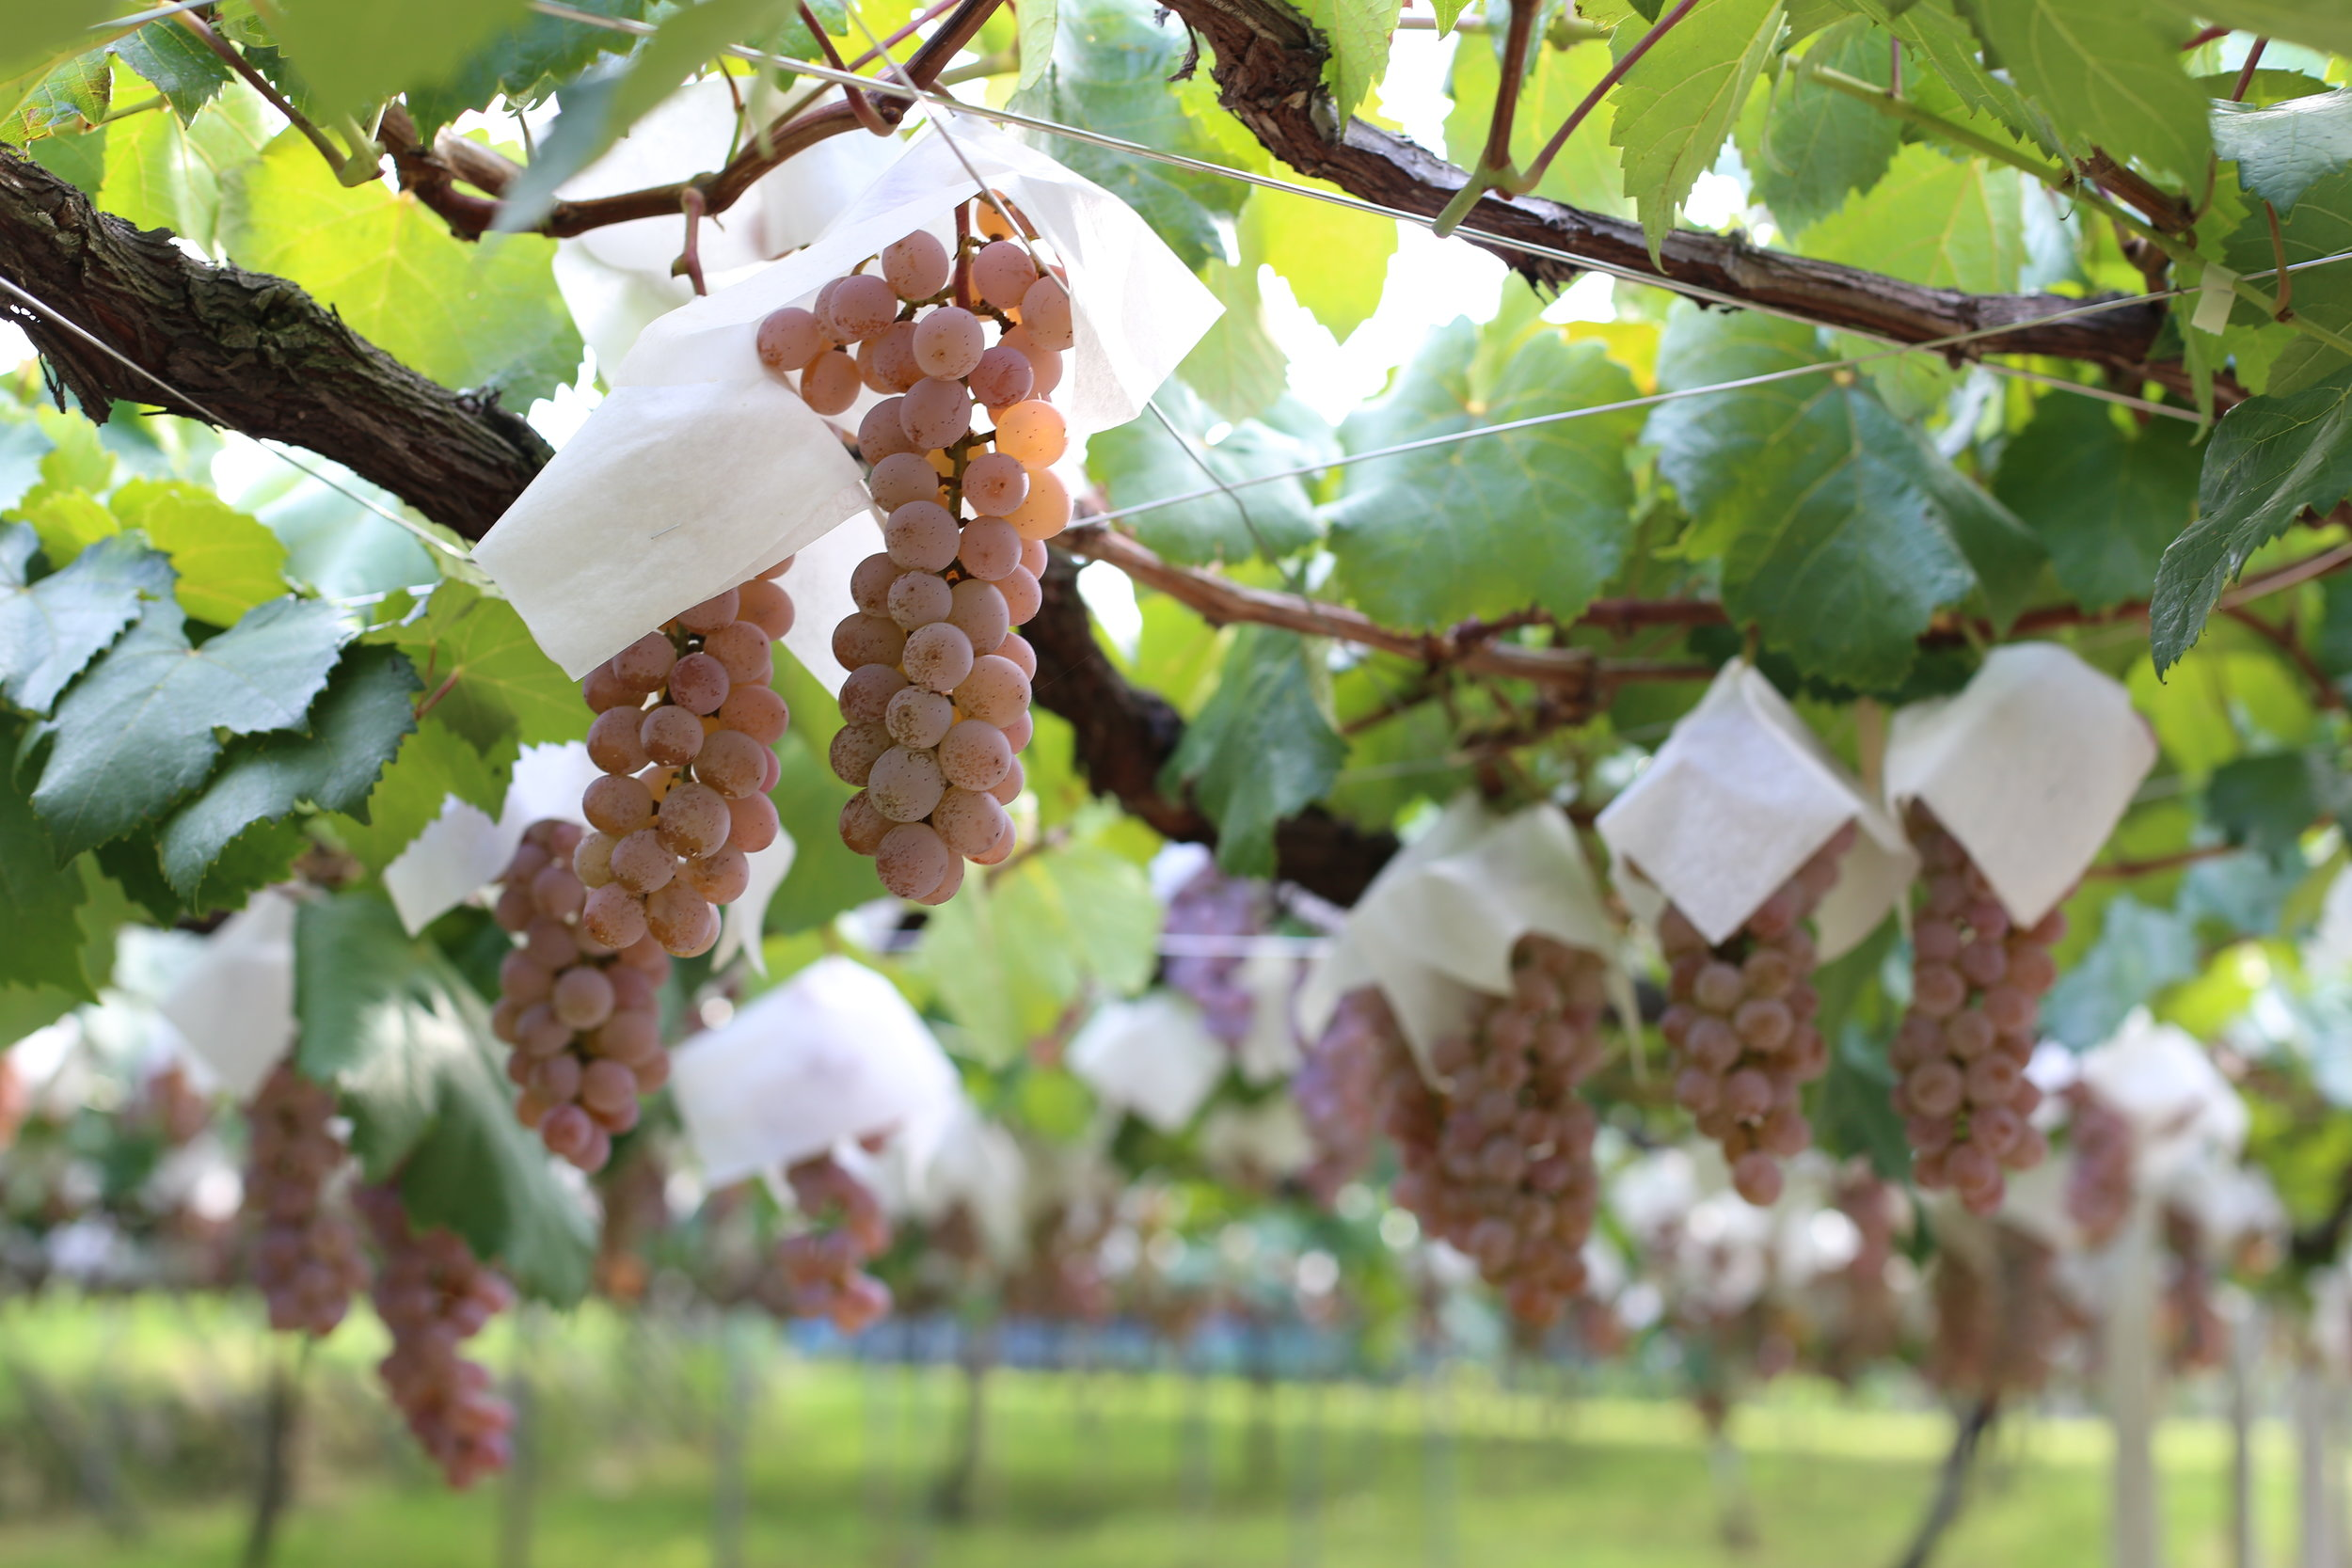 Koshu grapes with their distinctive paper hats that protect them from the elements.